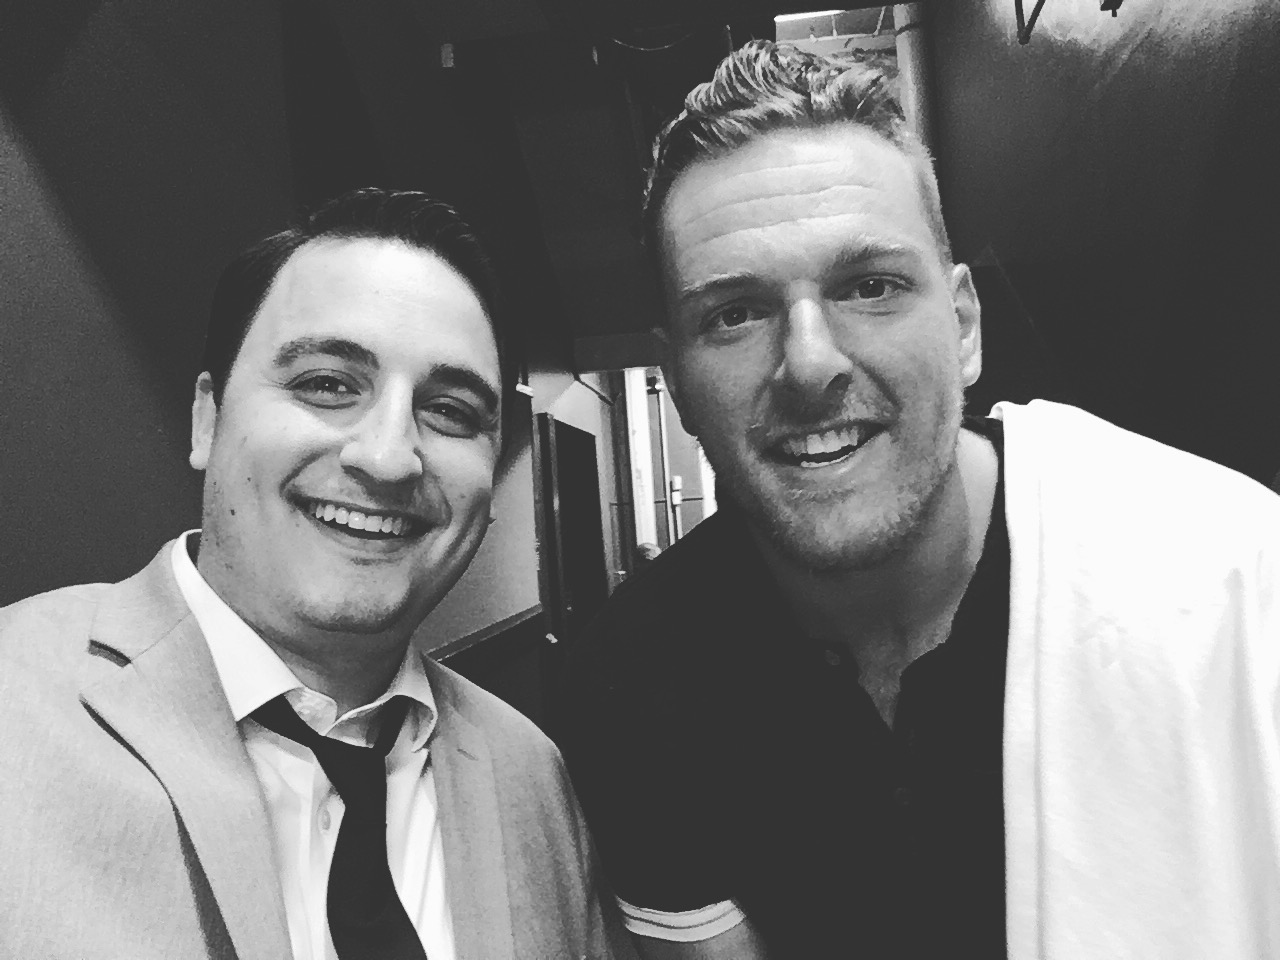 David Ranalli with Pat McAfee